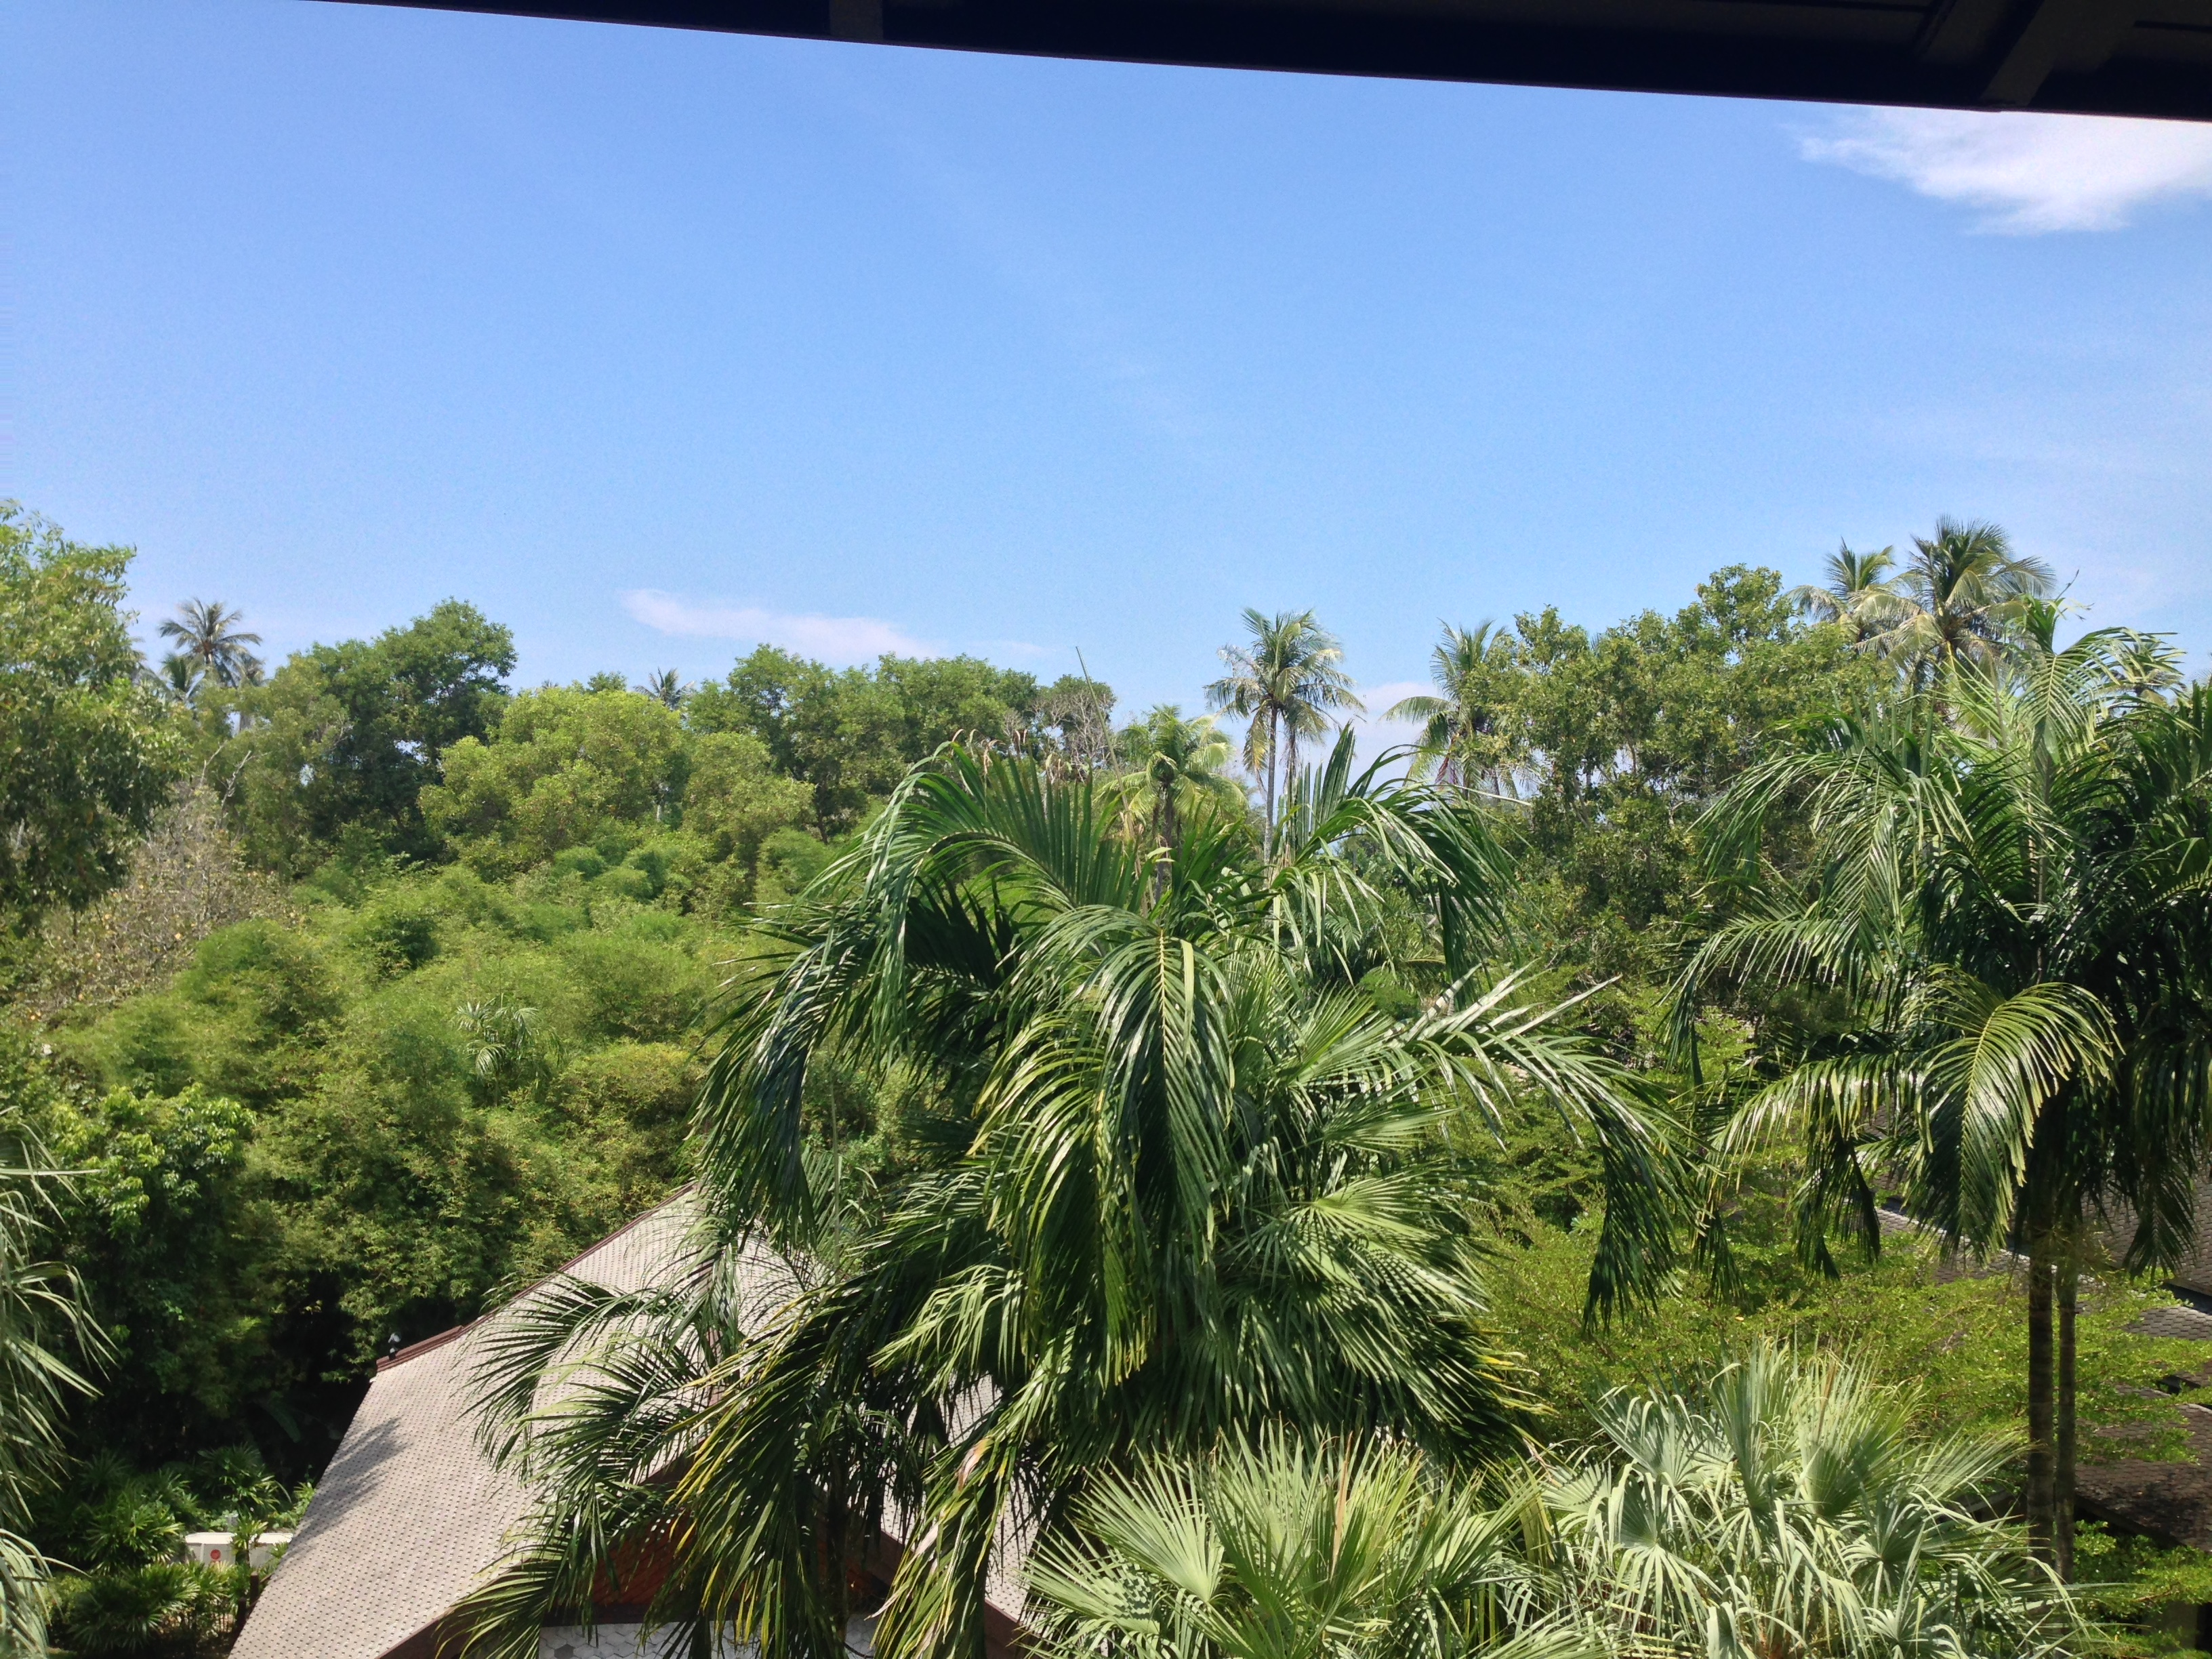 balcony view of palm trees with roof of yoga center